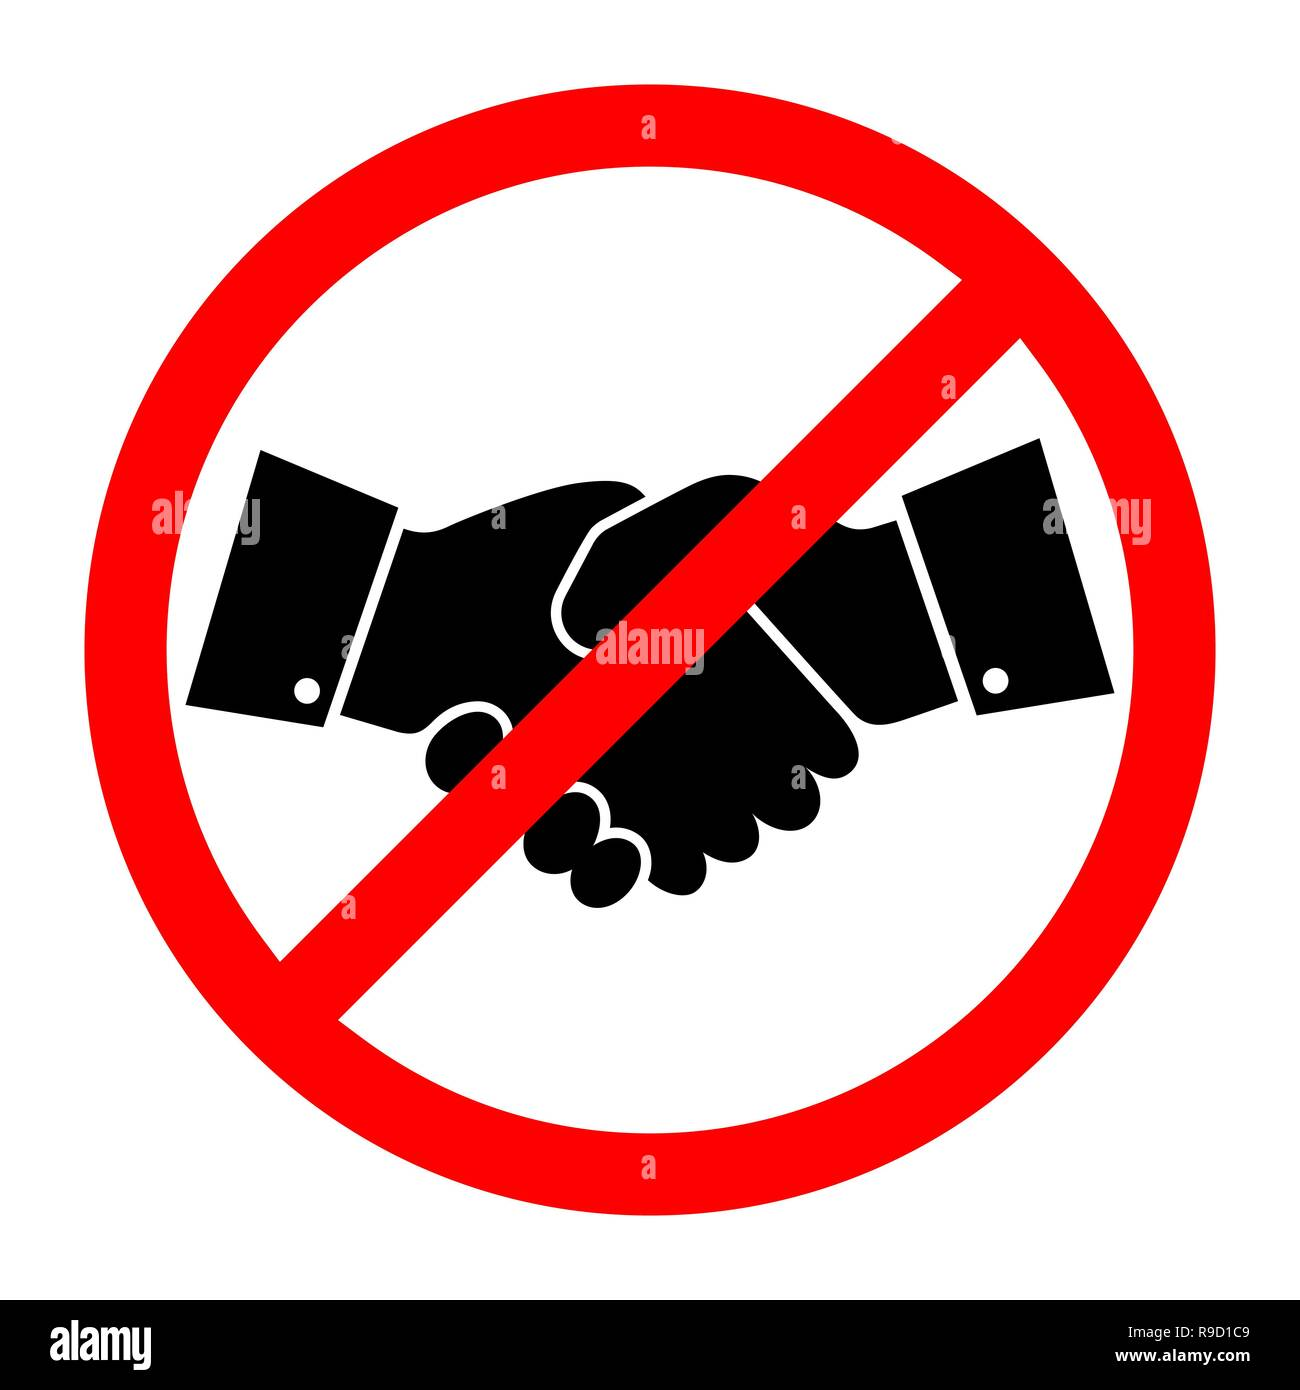 No Handshake Icon Vector Illustration No Dealing No Collaboration Stock Vector Image Art Alamy No hand shake png collections download alot of images for no hand shake download free with high quality for designers. https www alamy com no handshake icon vector illustration no dealing no collaboration image229553193 html